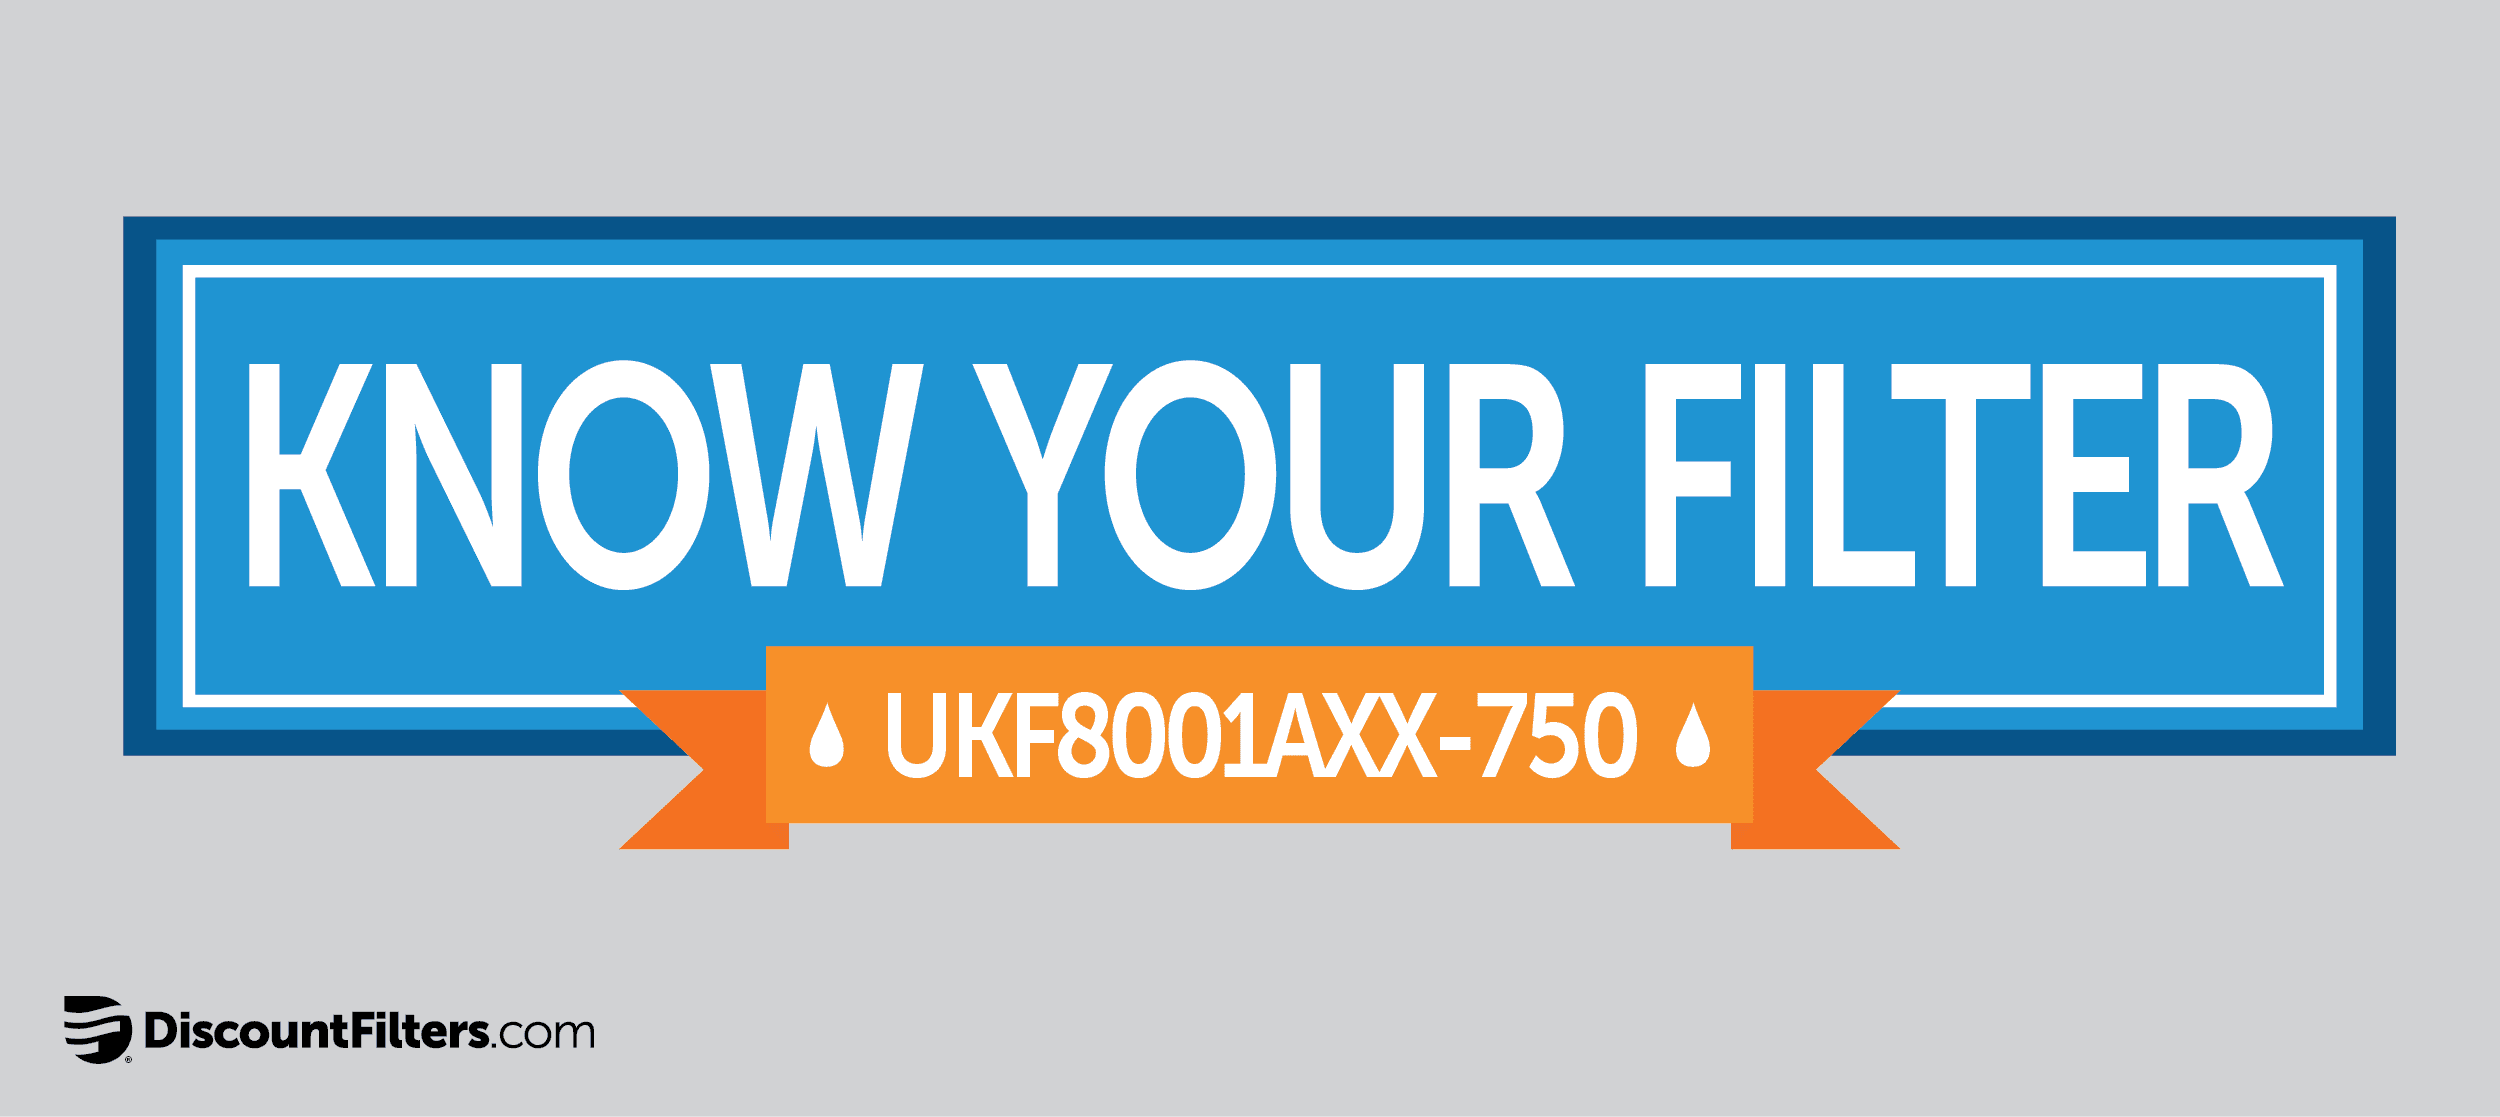 know your fridge filter UKF8001AXX-750